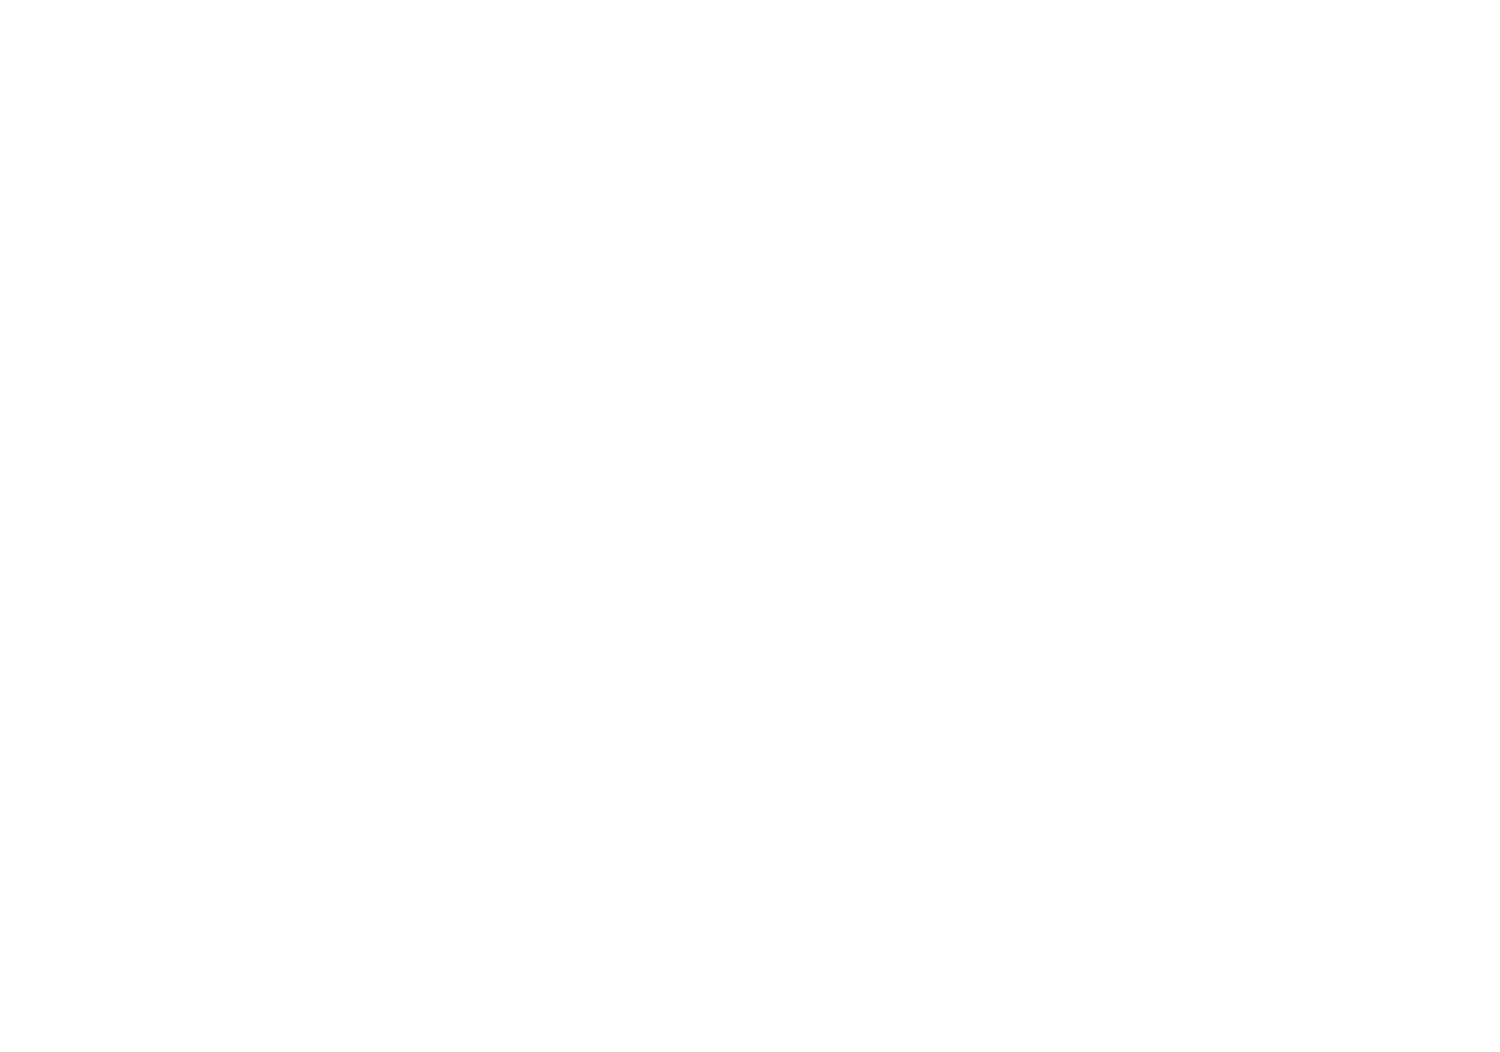 Catapult Websites by Sophik